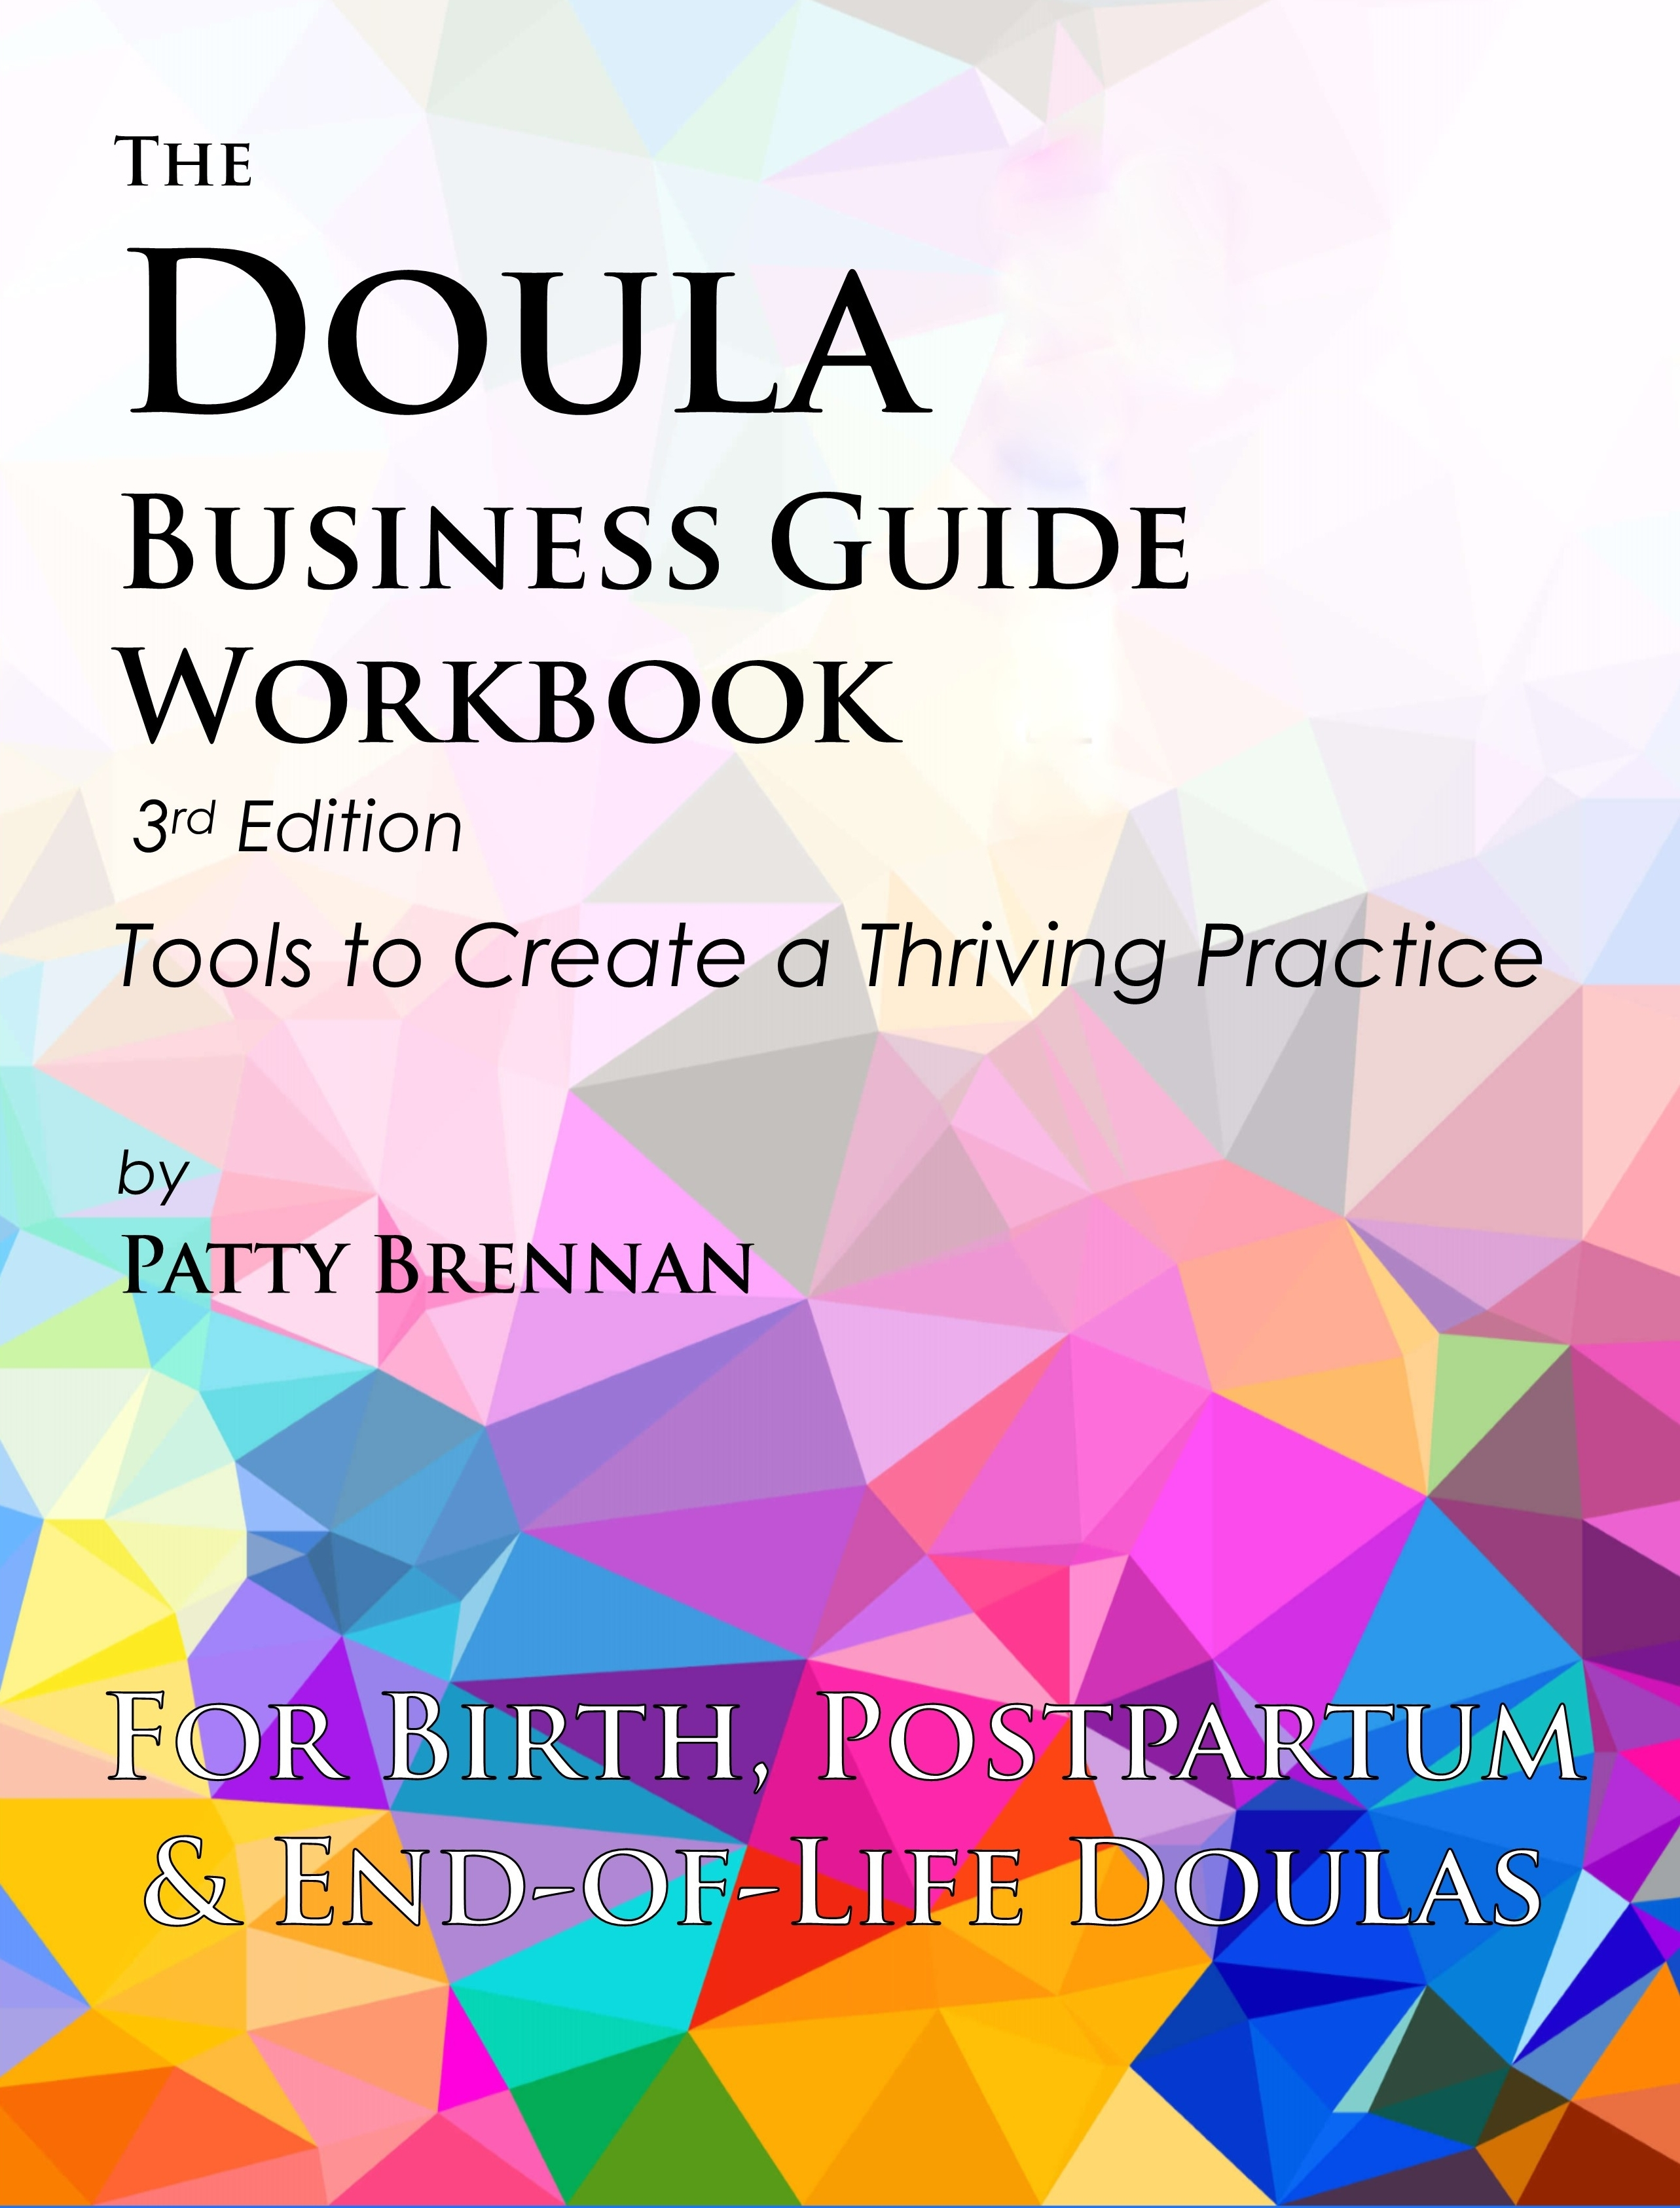 Doula Business Guide Workbook by Patty Brennan